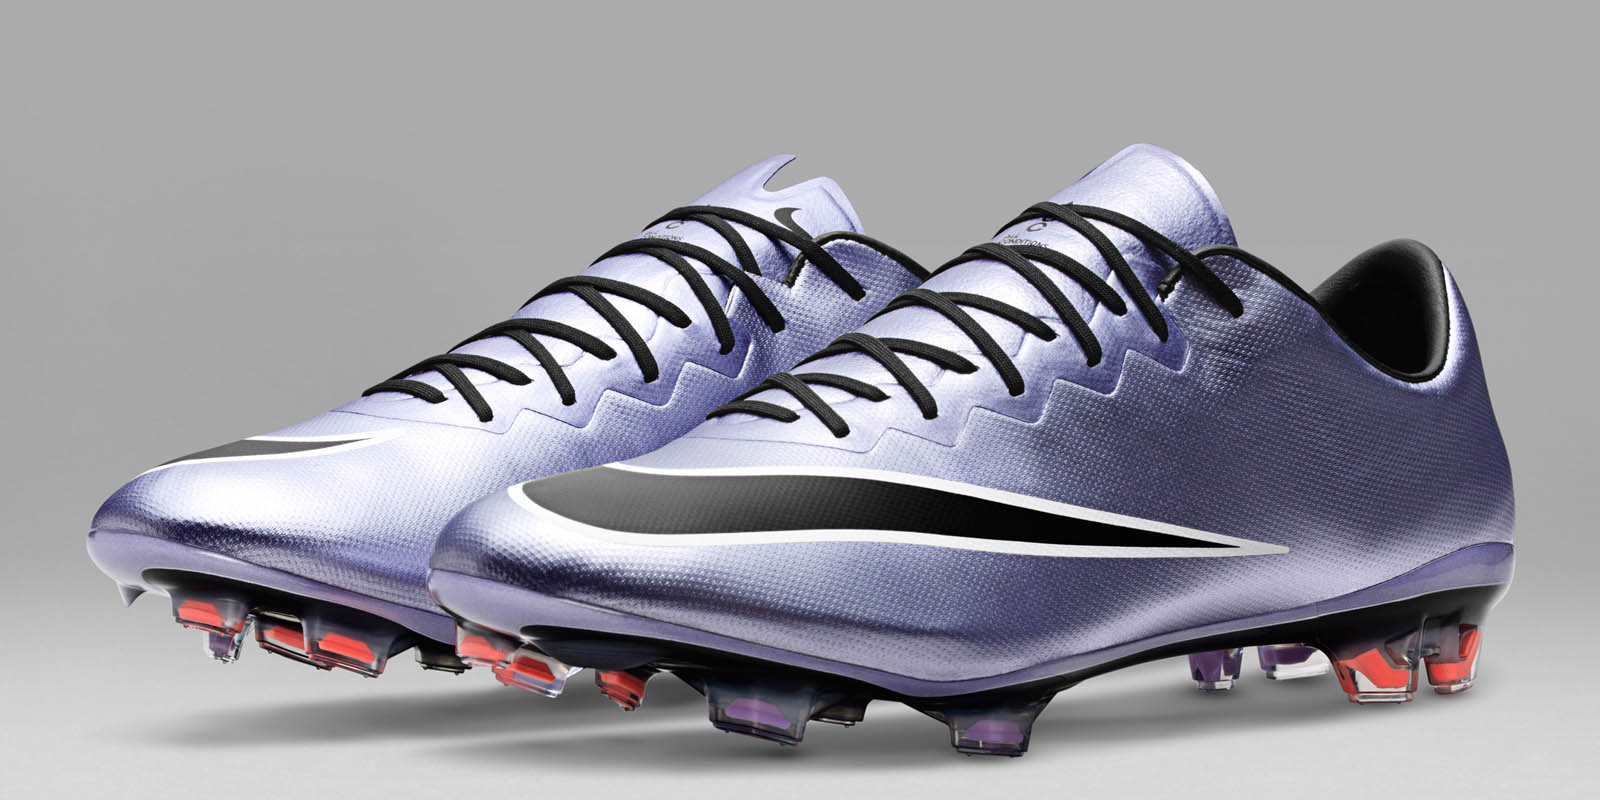 Urban Lilac Nike Mercurial Vapor X 2016 Boots Released ...